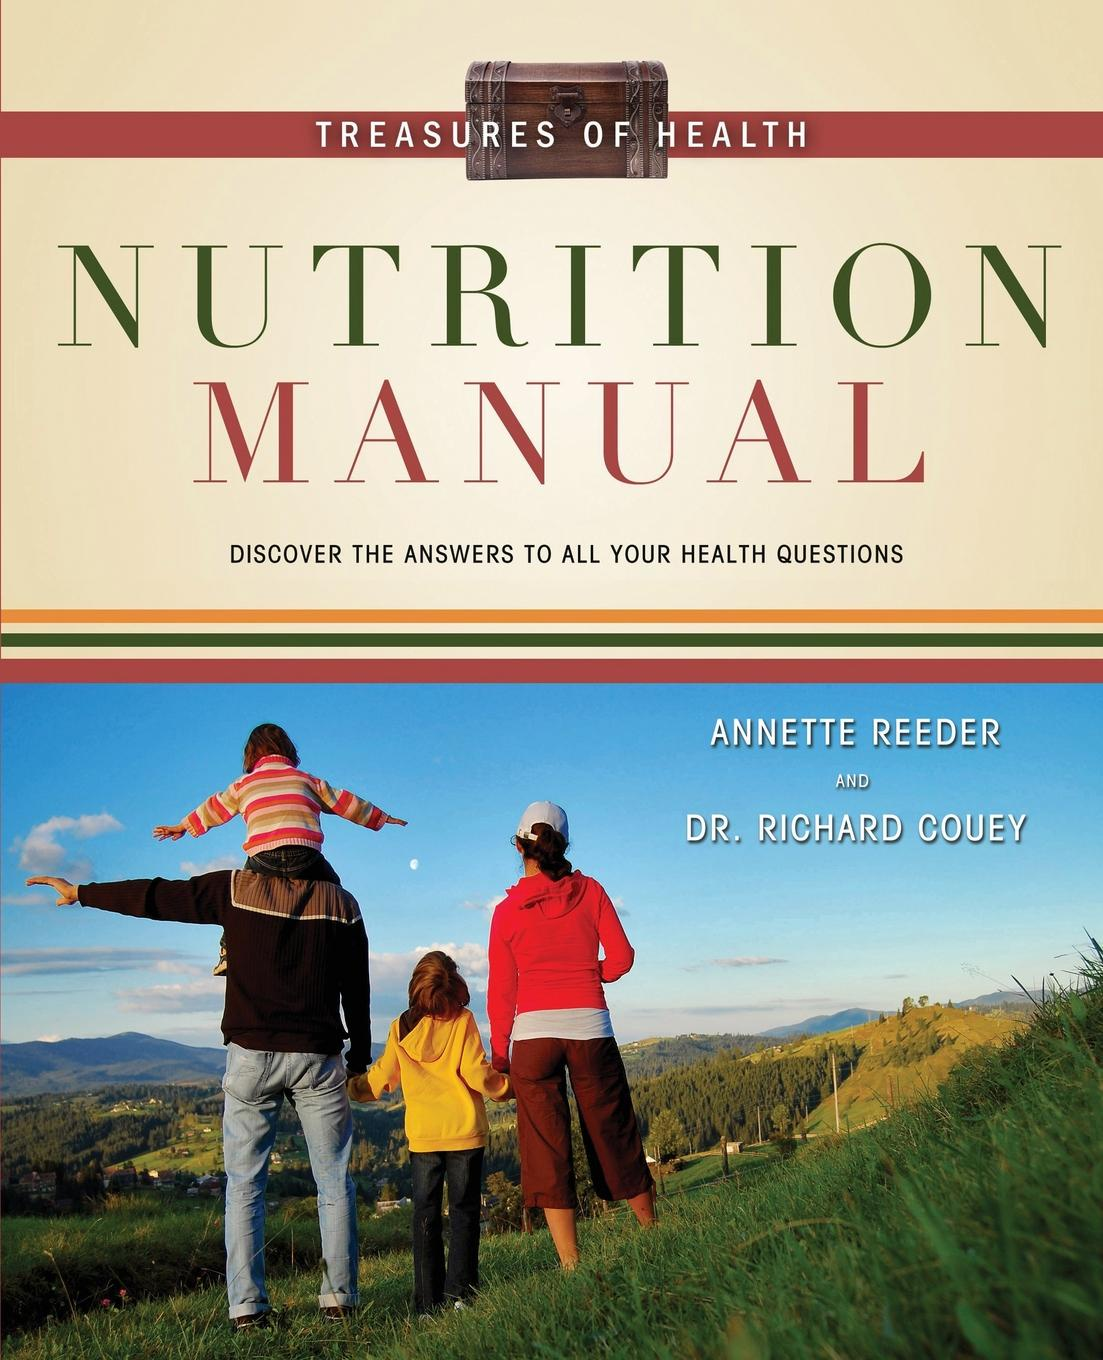 Annette Reeder, Richard Couey, Dr Couey Treasures of Health Nutrition Manual